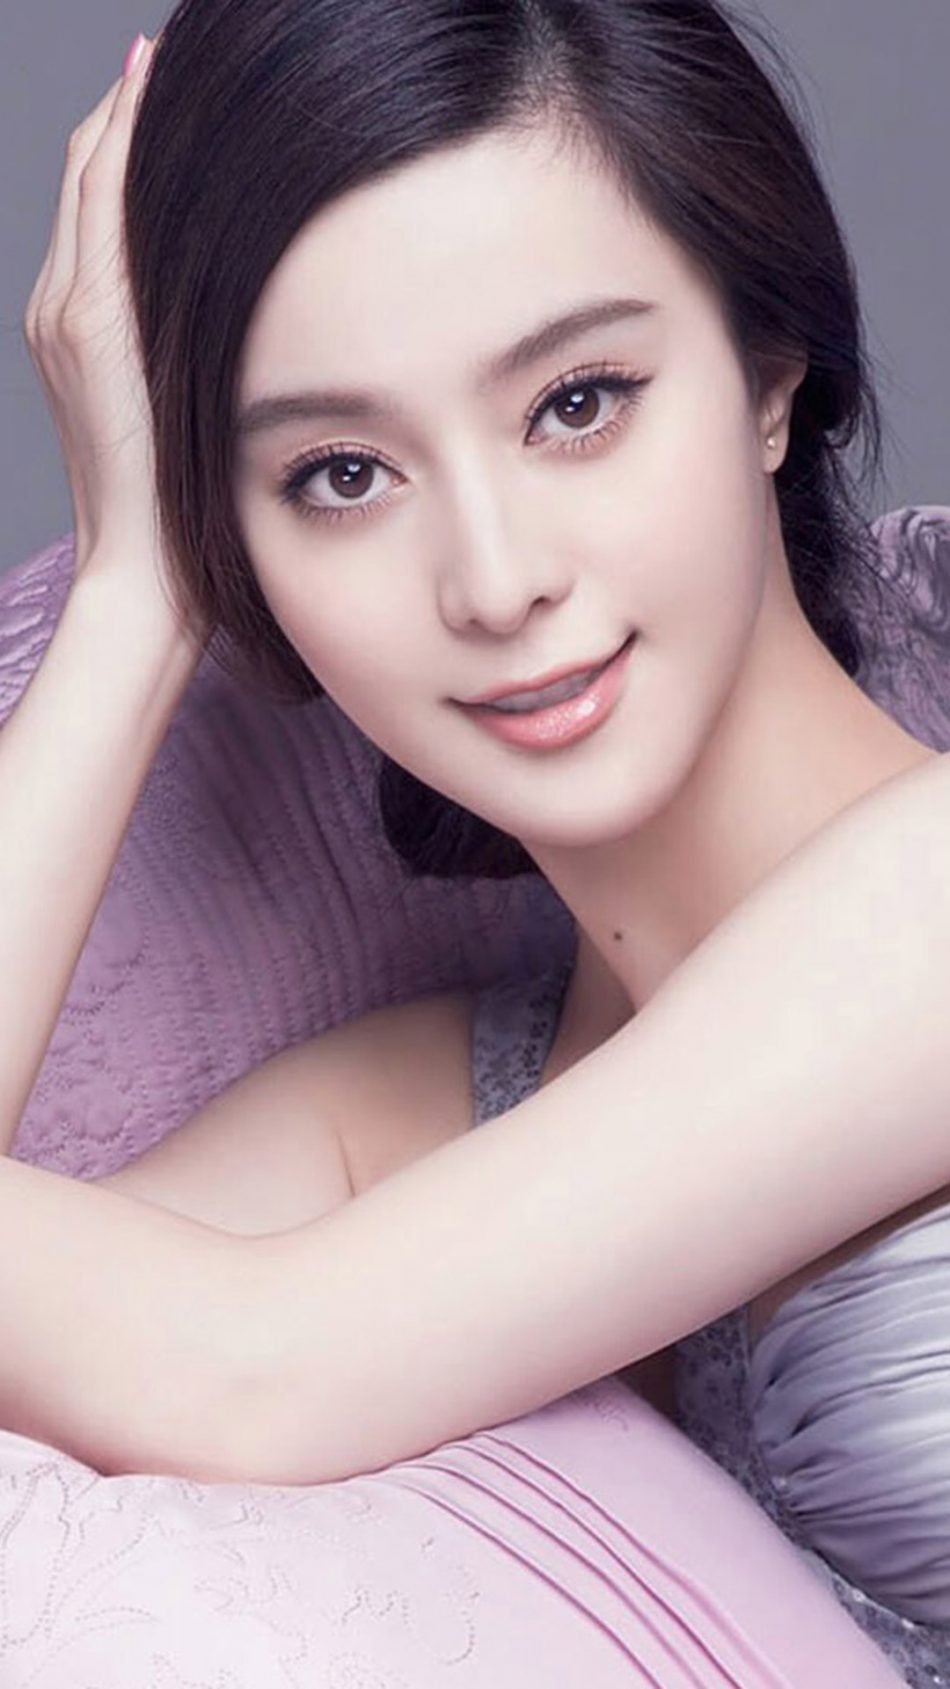 chinese actress fan bingbing - download free 100% pure hd quality